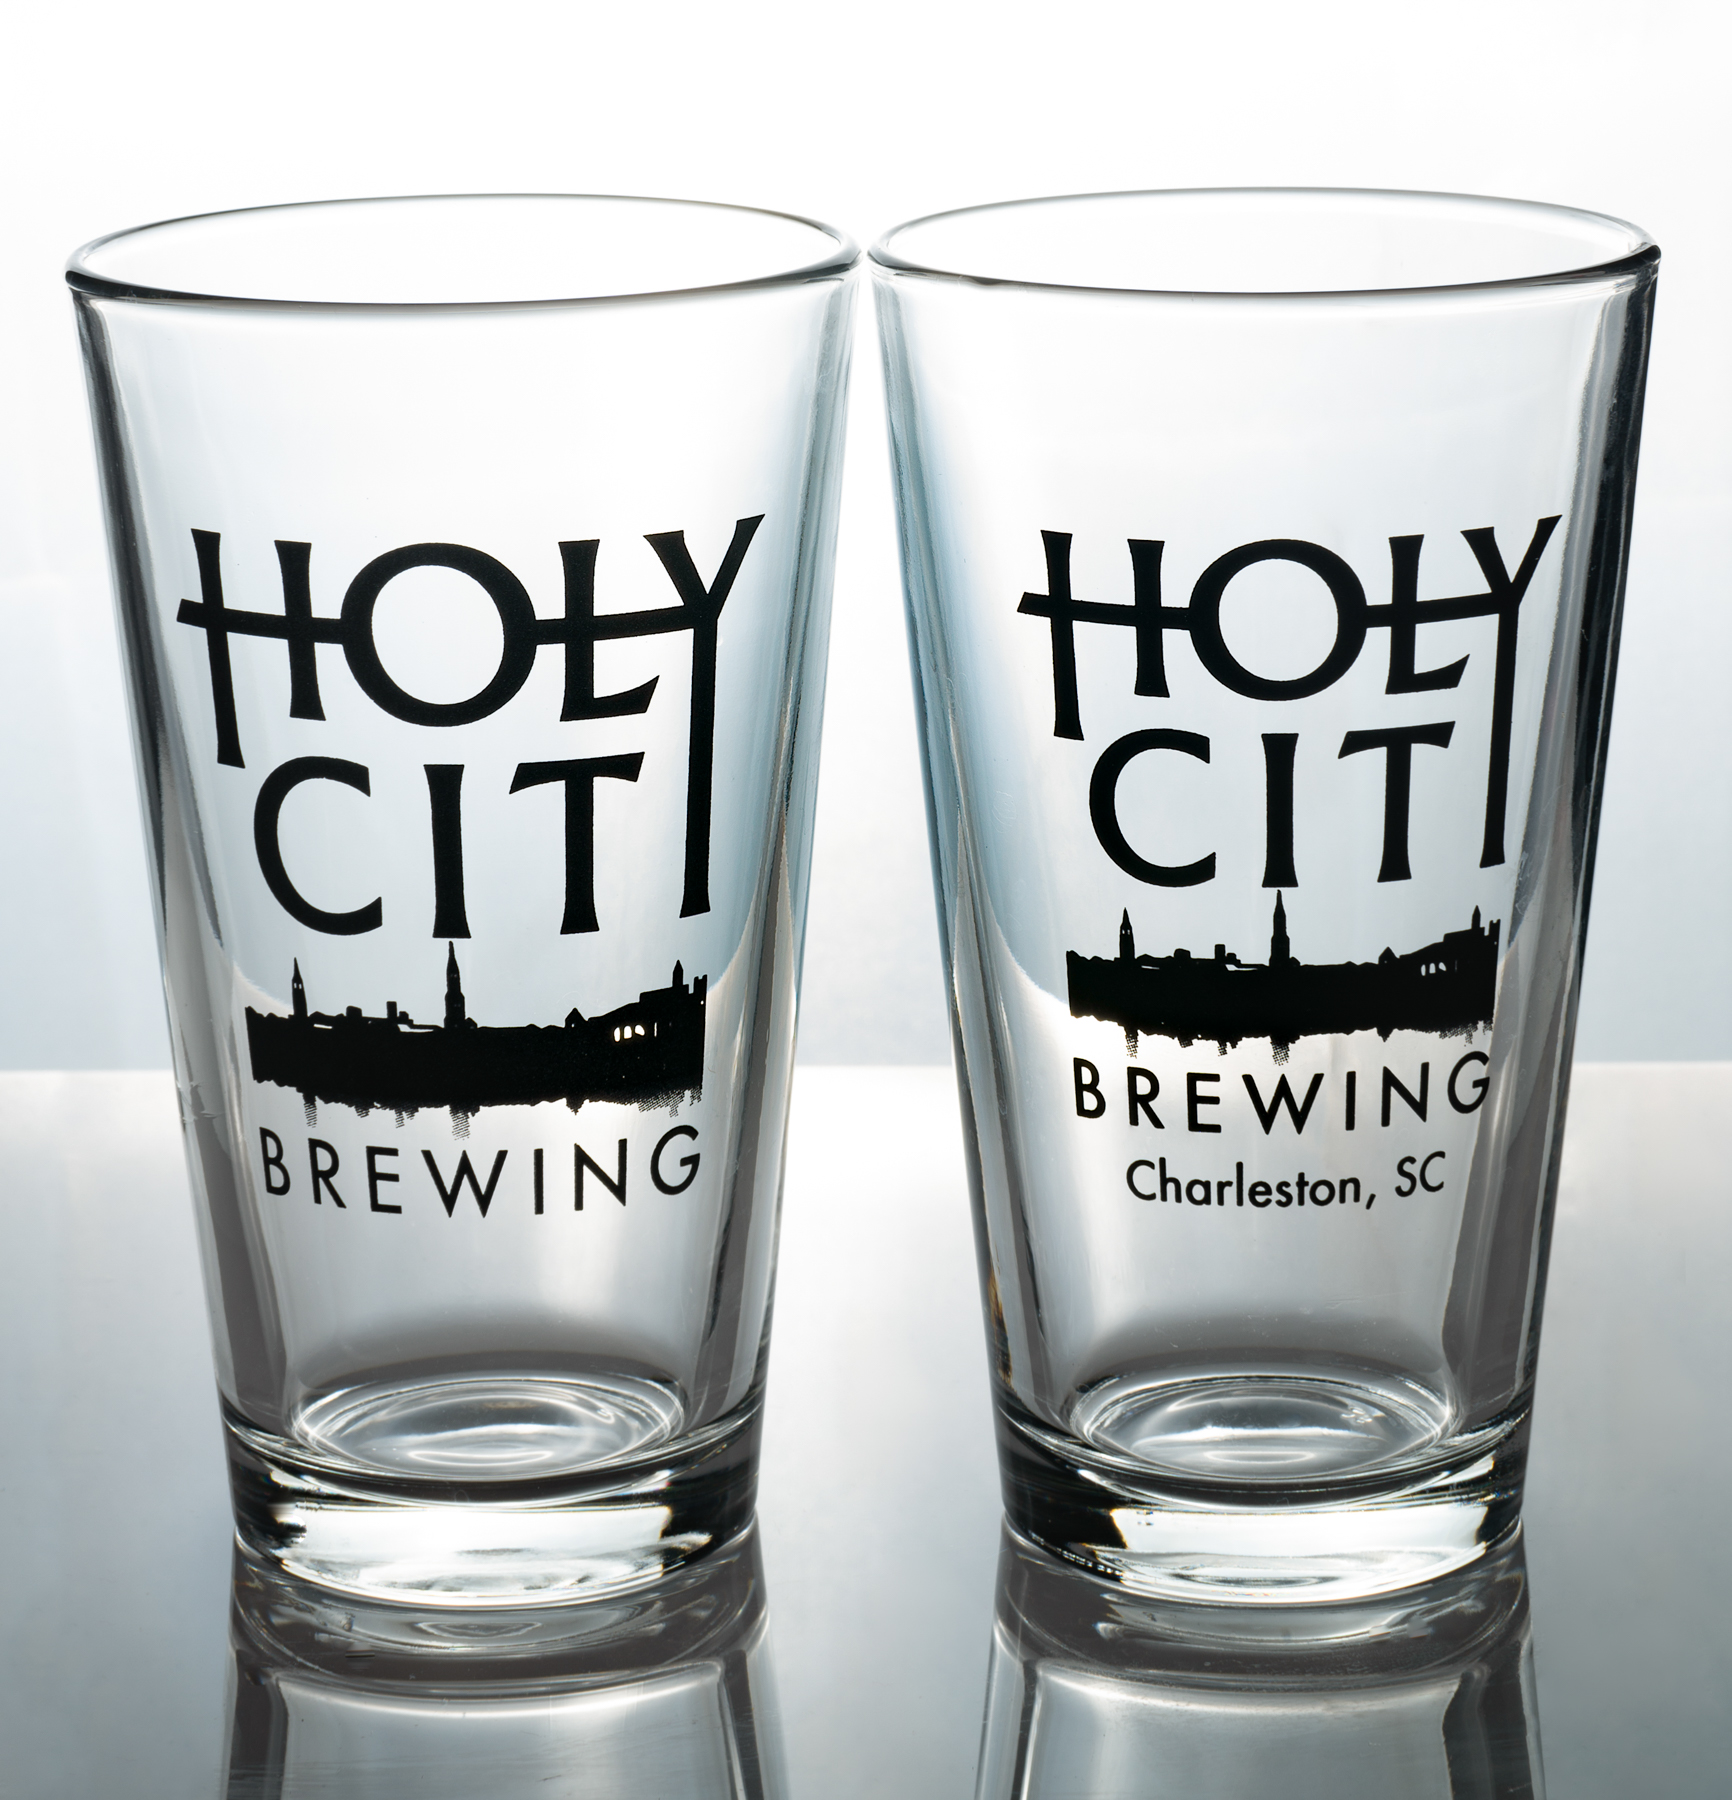 Holy City Brewing Product Photography captured by TOMO Pictures in Charleston, SC